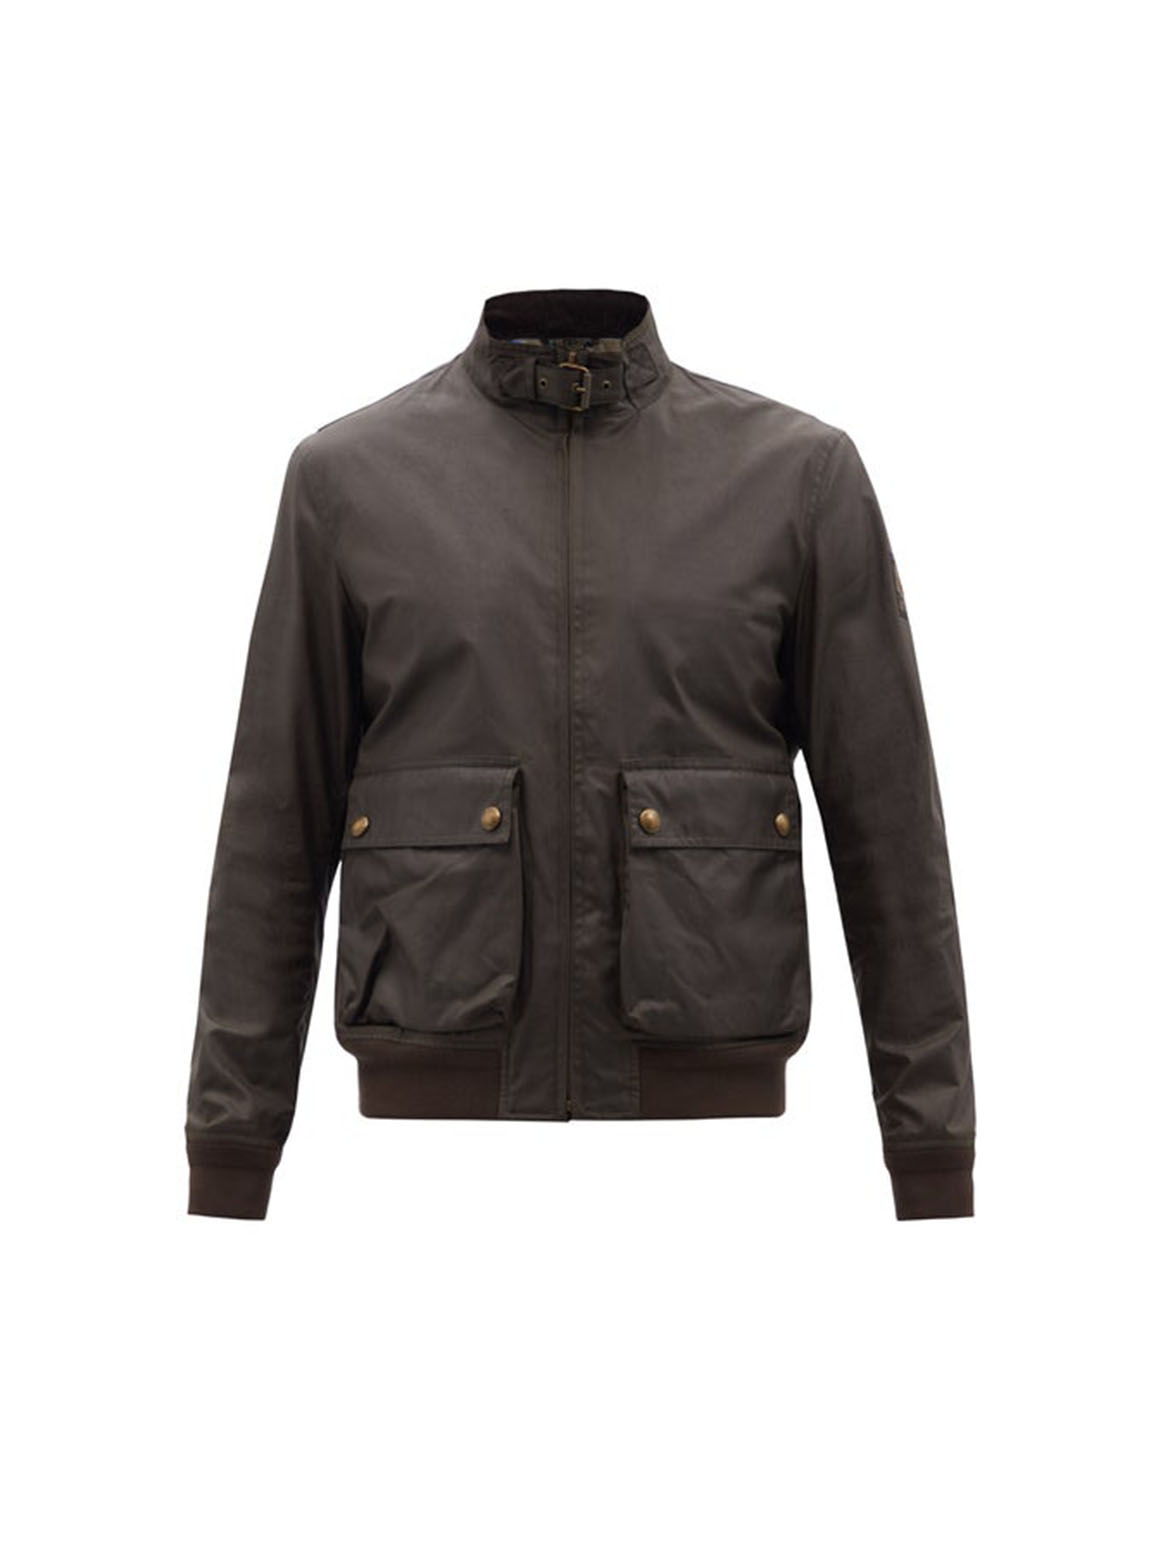 Scouter waxed cotton-canvas bomber jacket